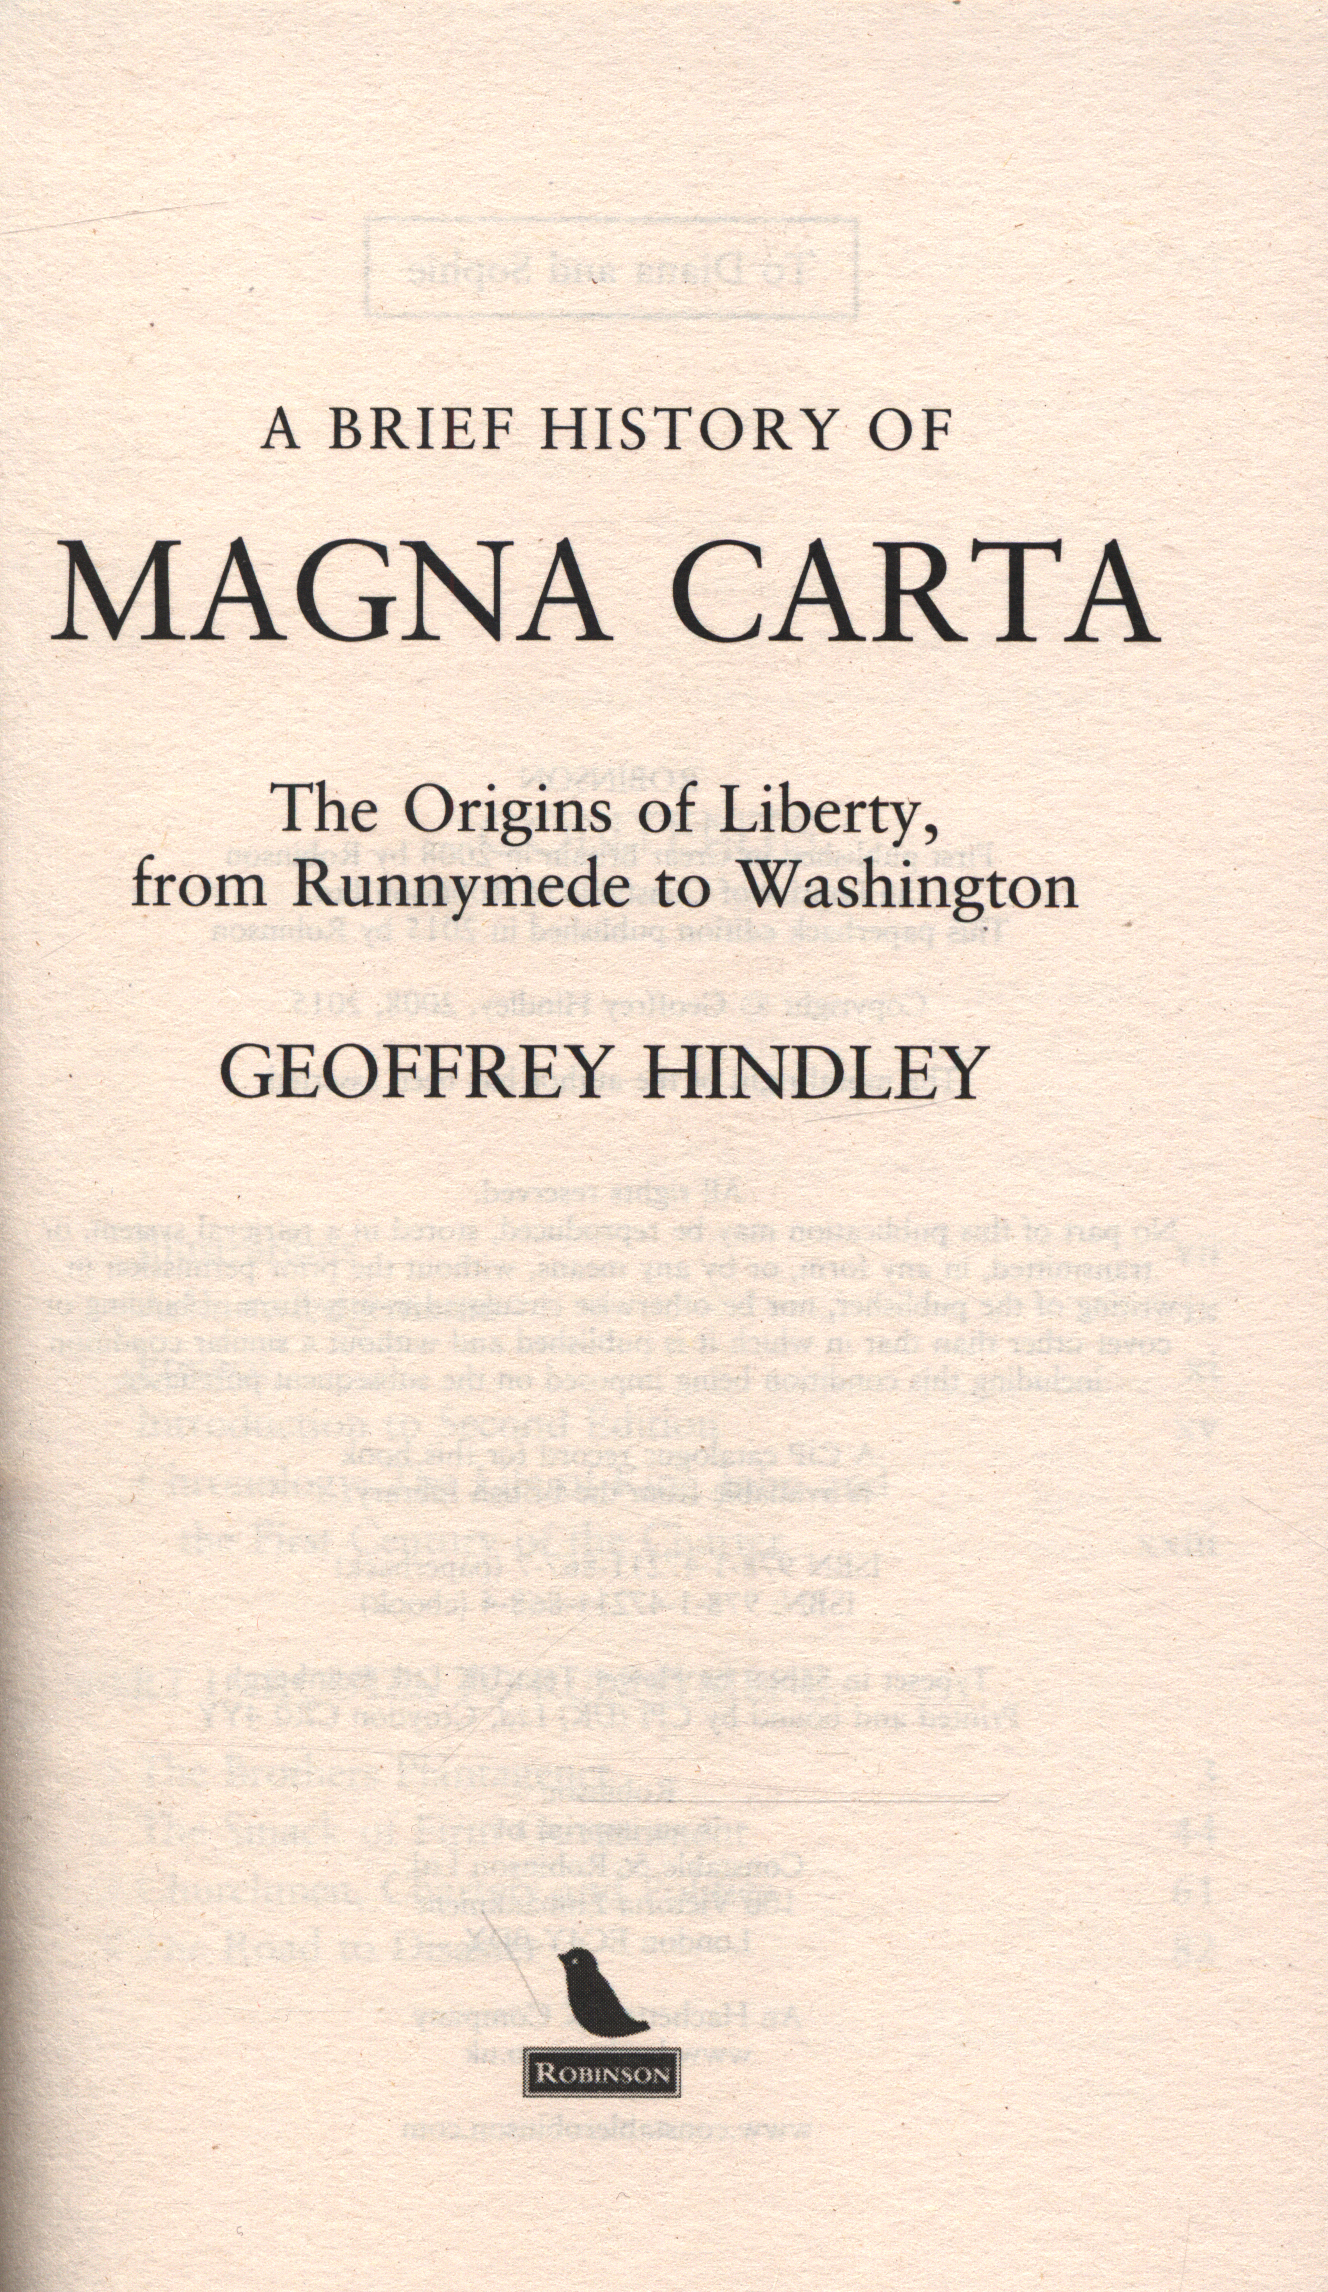 """an analysis of the magna carta and its american legacy Voices of democracy the documents review the article """"magna carta and its american legacy"""" in post by day 4 an analysis of the democratic."""